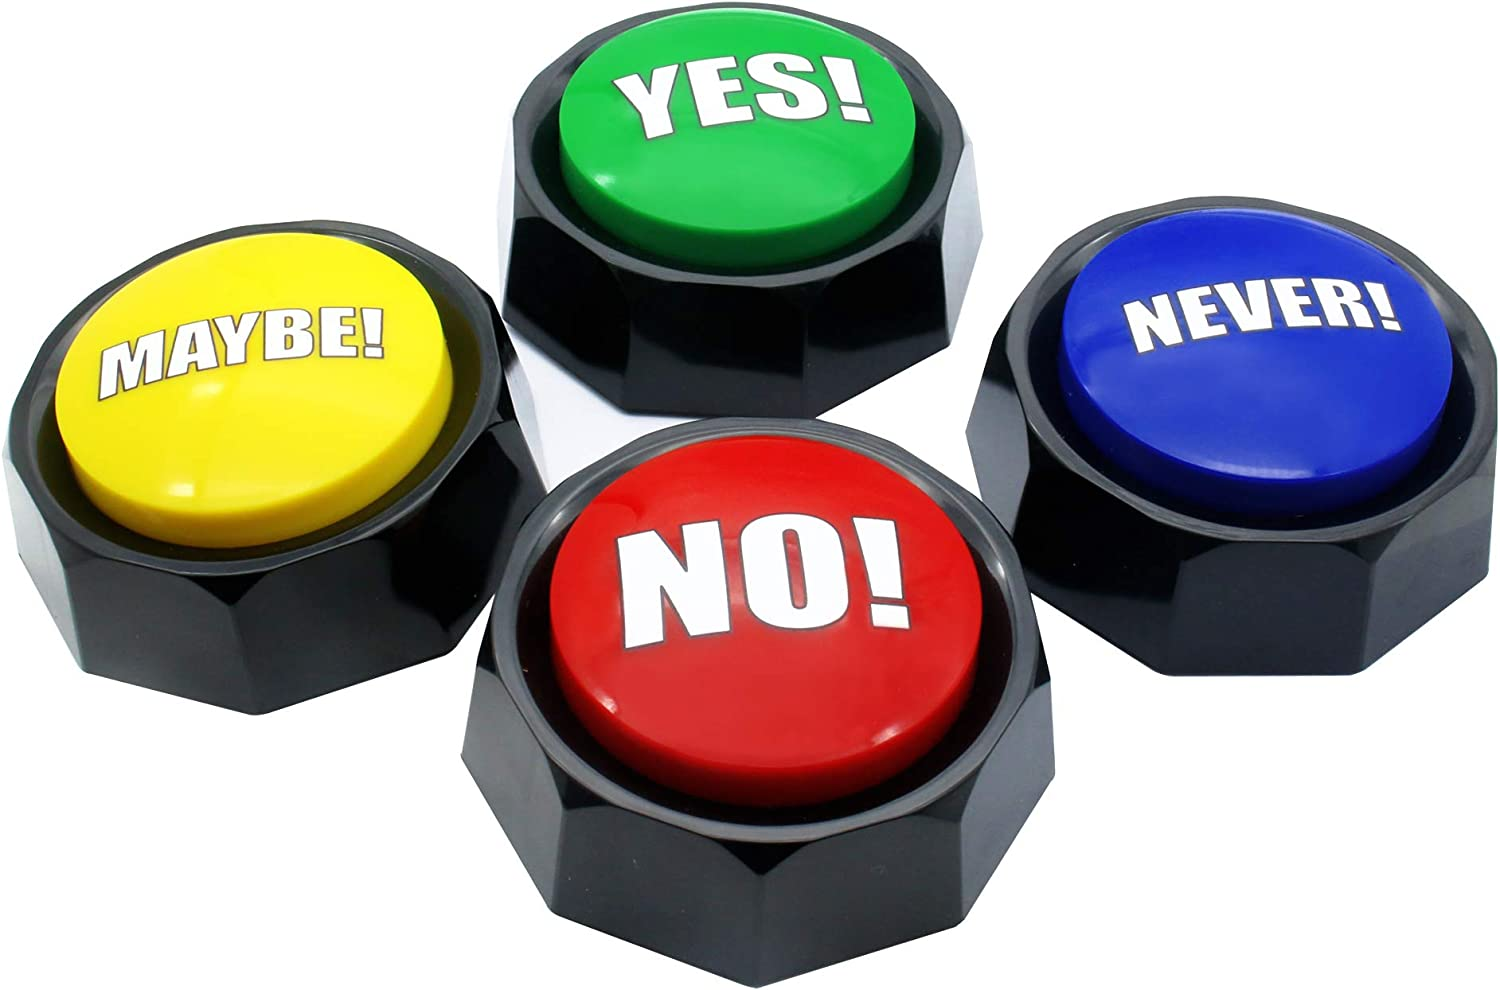 Sound Button - Buzzers - Talking Button - Answer Buzzers - No Button - Yes Maybe Never Button - Wrong Button - Learning Buzzers - Set of 4 Assorted Colored Buzzers, Material Safety, Increase Fun